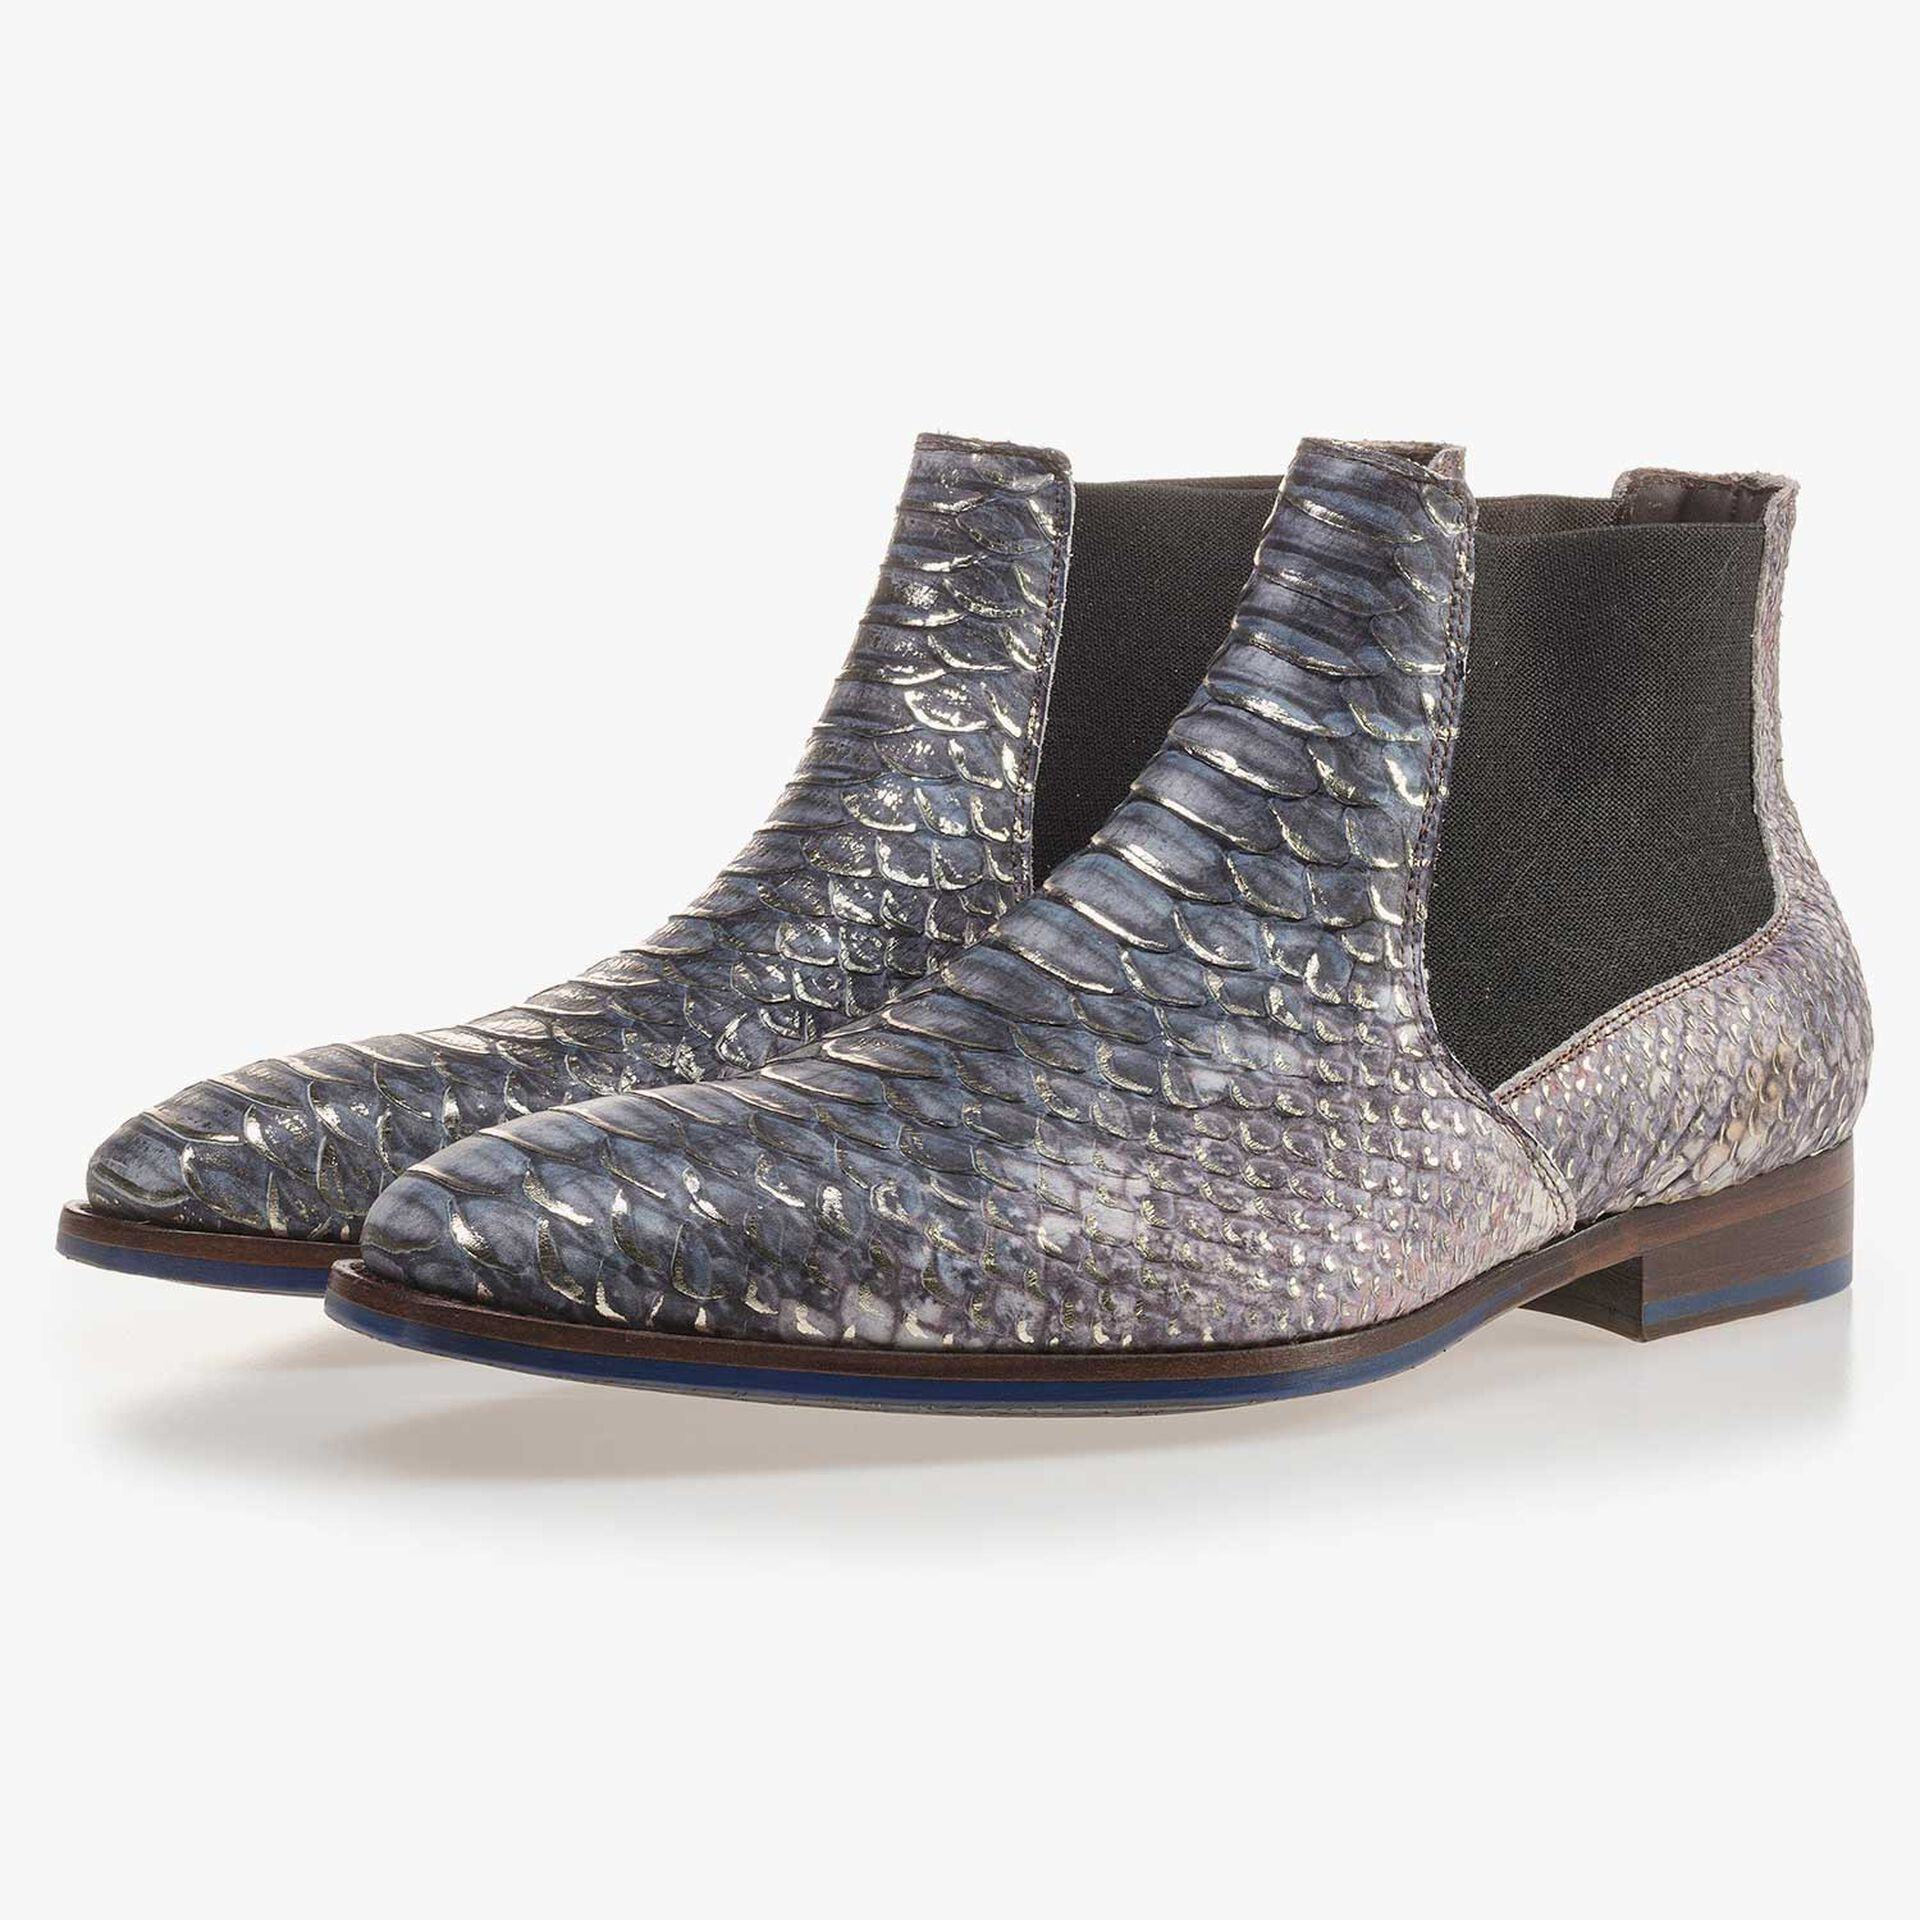 Premium blue Chelsea boot with a snake relief pattern